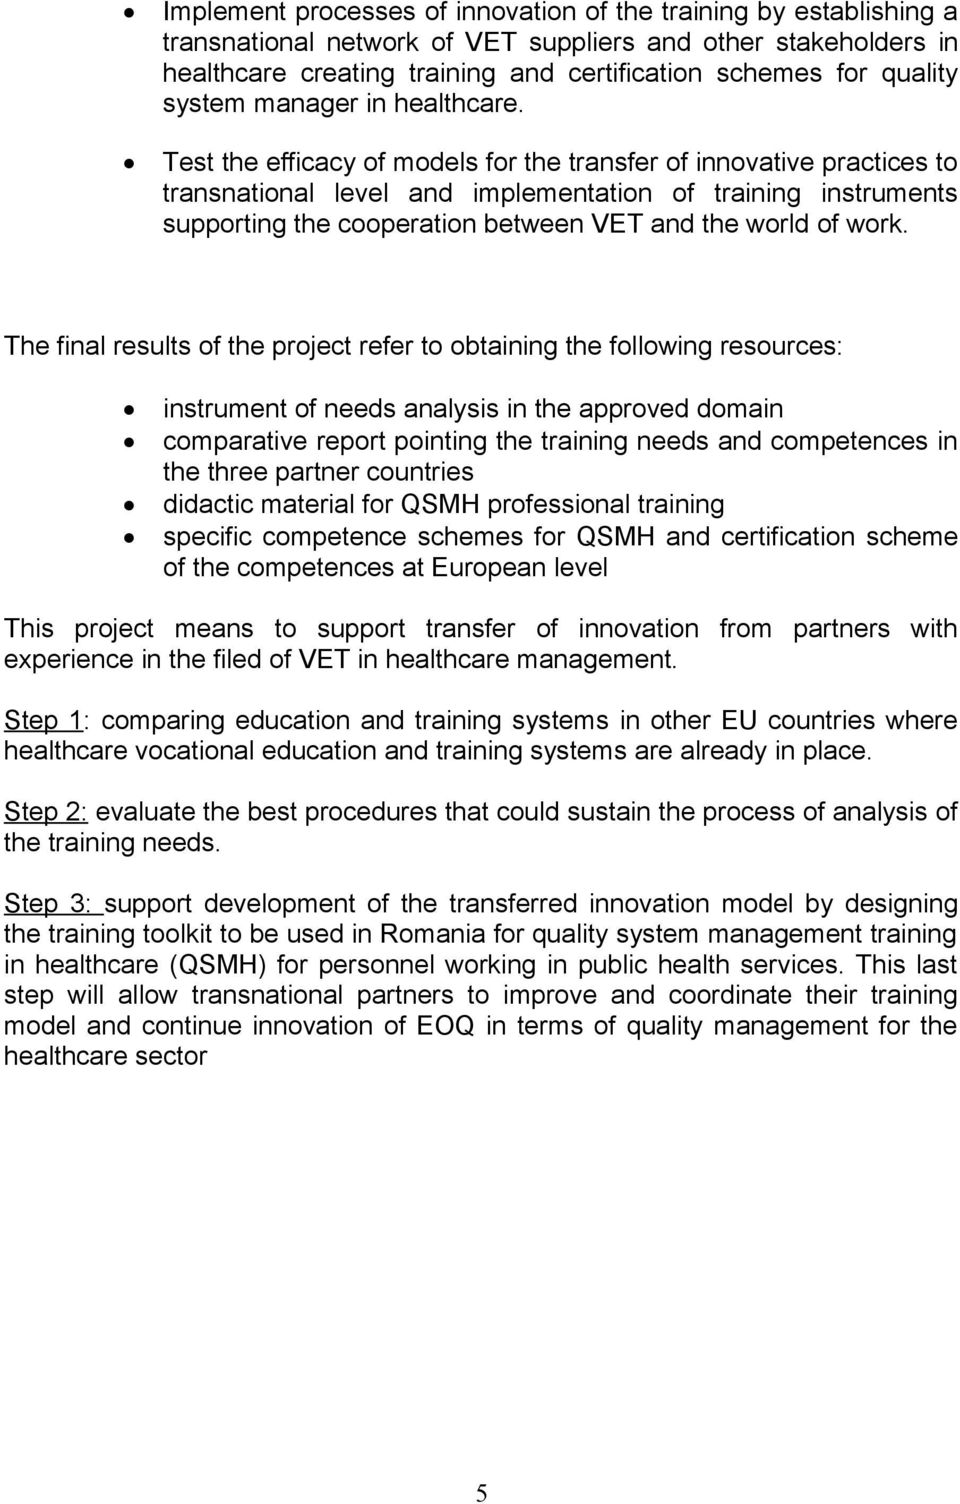 Test the efficacy of models for the transfer of innovative practices to transnational level and implementation of training instruments supporting the cooperation between VET and the world of work.